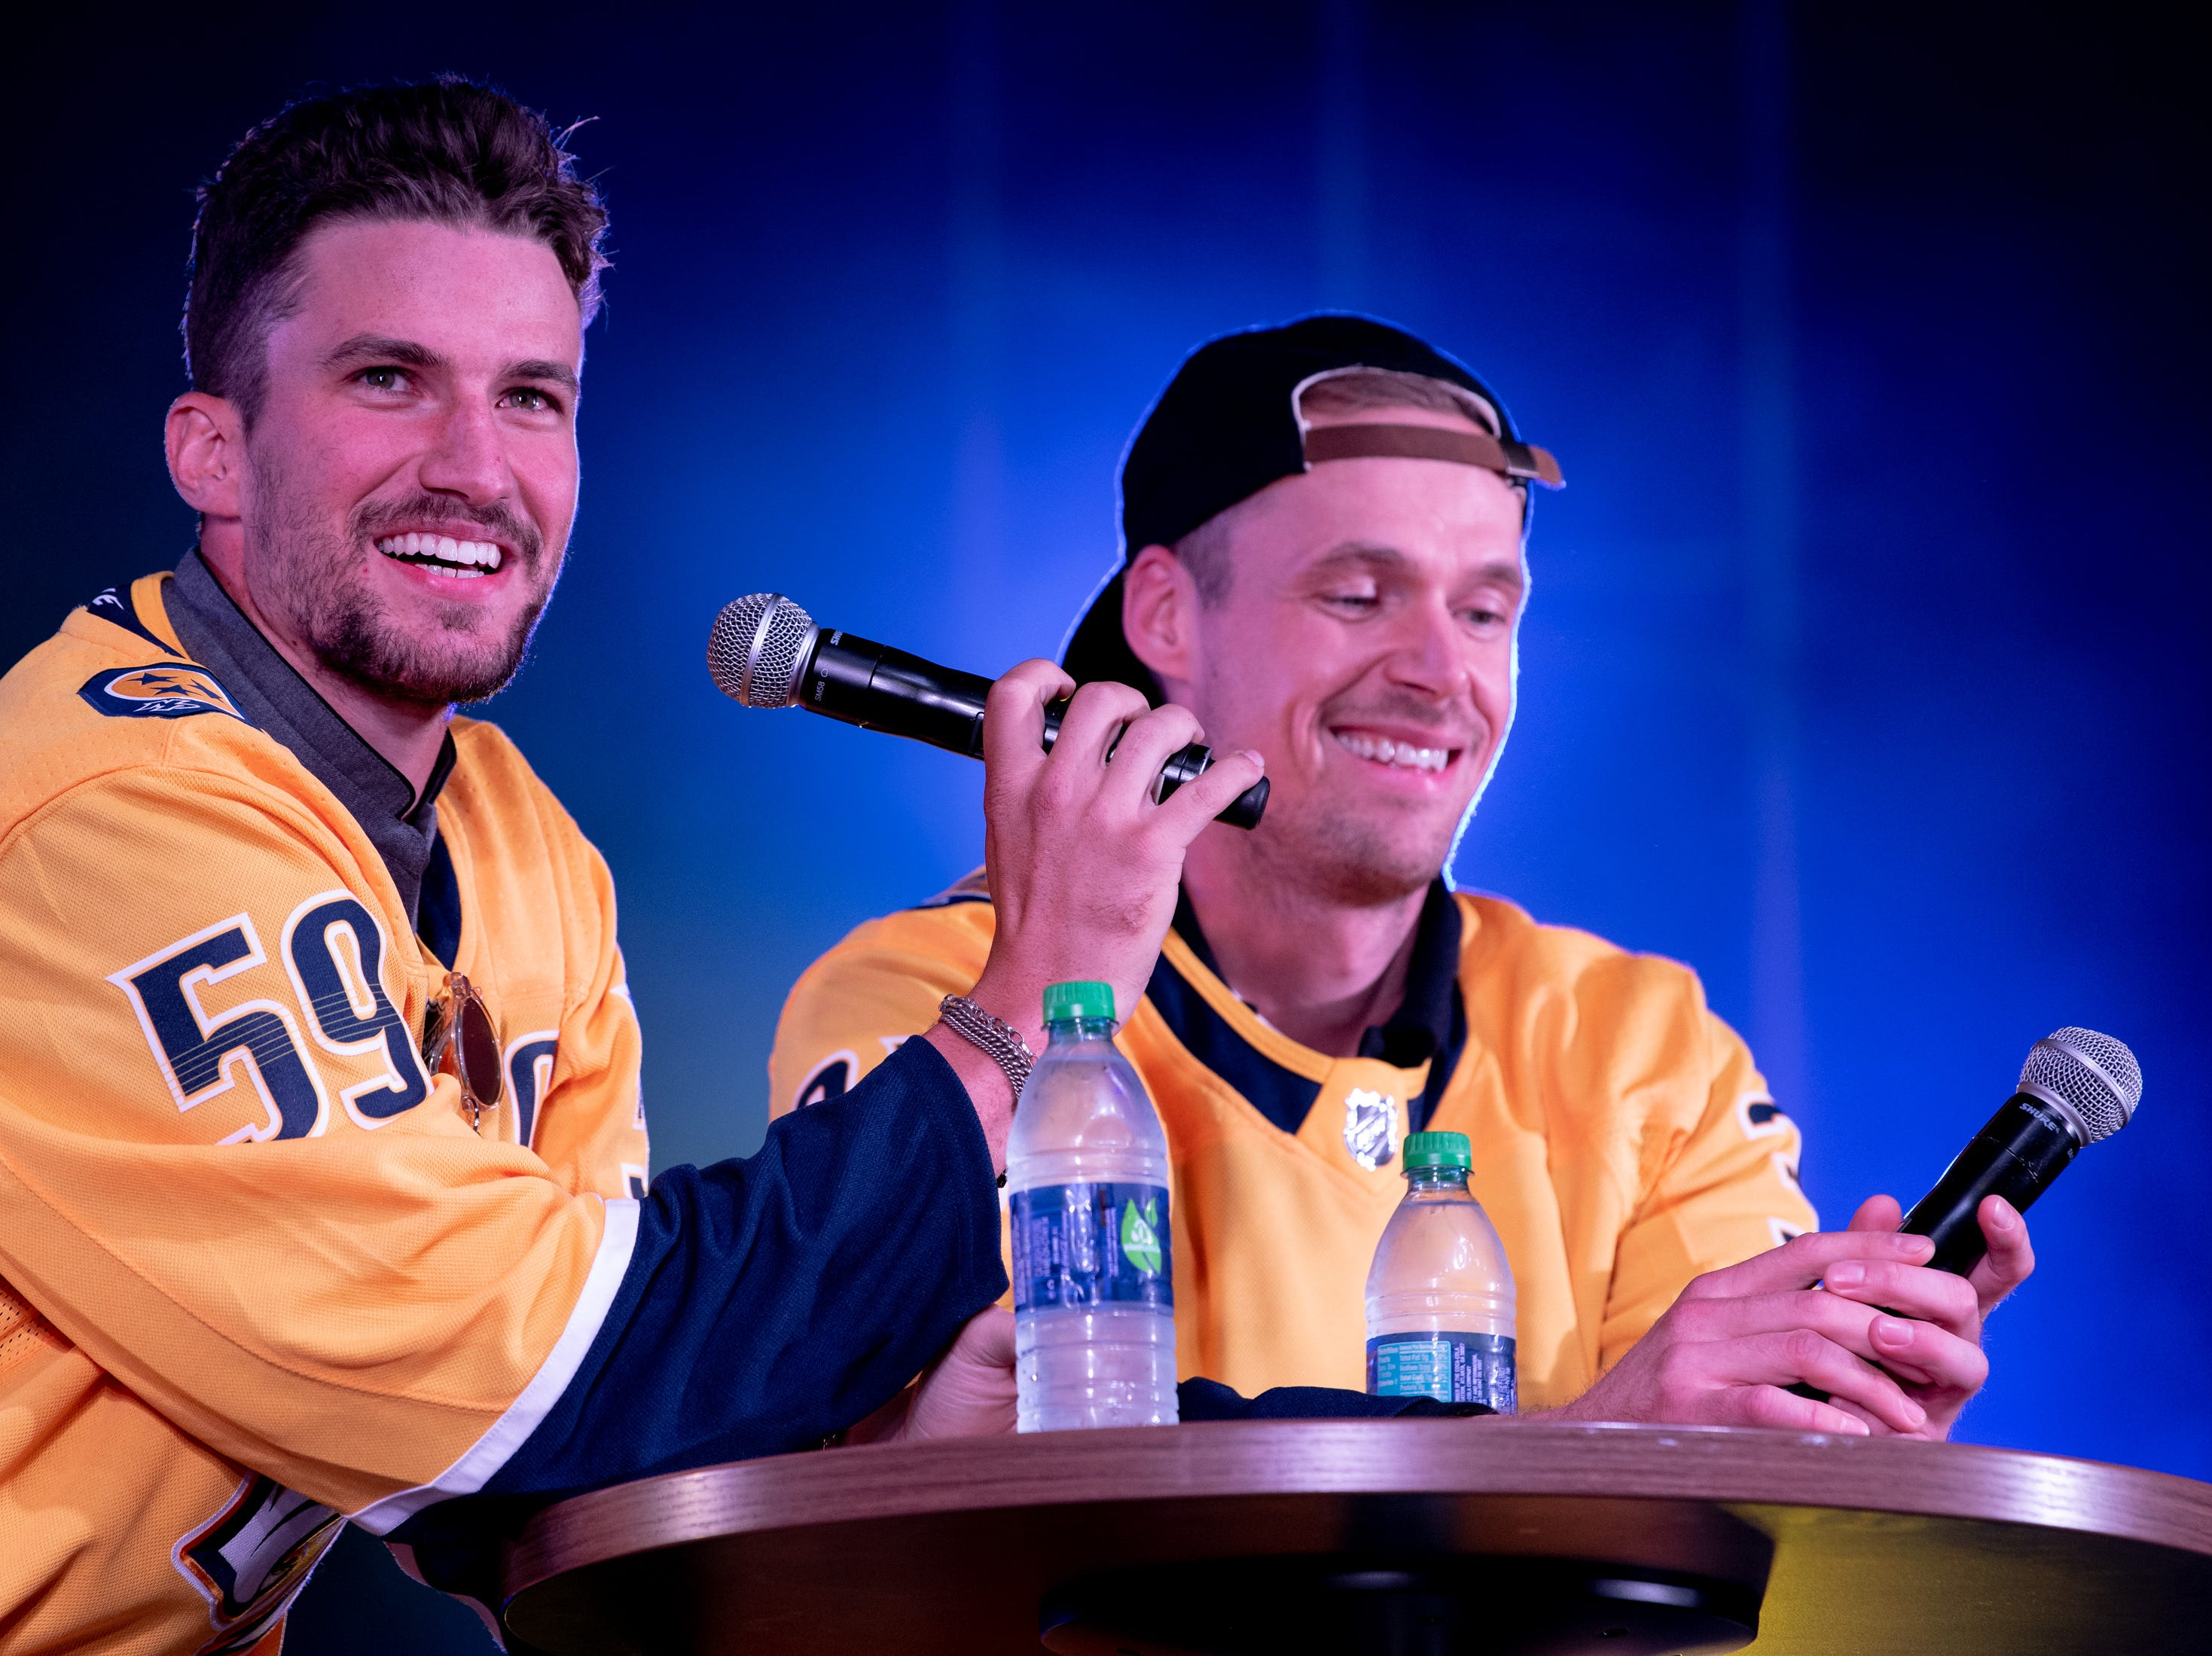 Nashville Predators defenseman Roman Josi (59) and goaltender Pekka Rinne (35) answer fan questions during the Player Gold Walk at the Bridestone Arena Walk of Fame Park in Nashville, Tenn., Friday, Sept. 28, 2018.